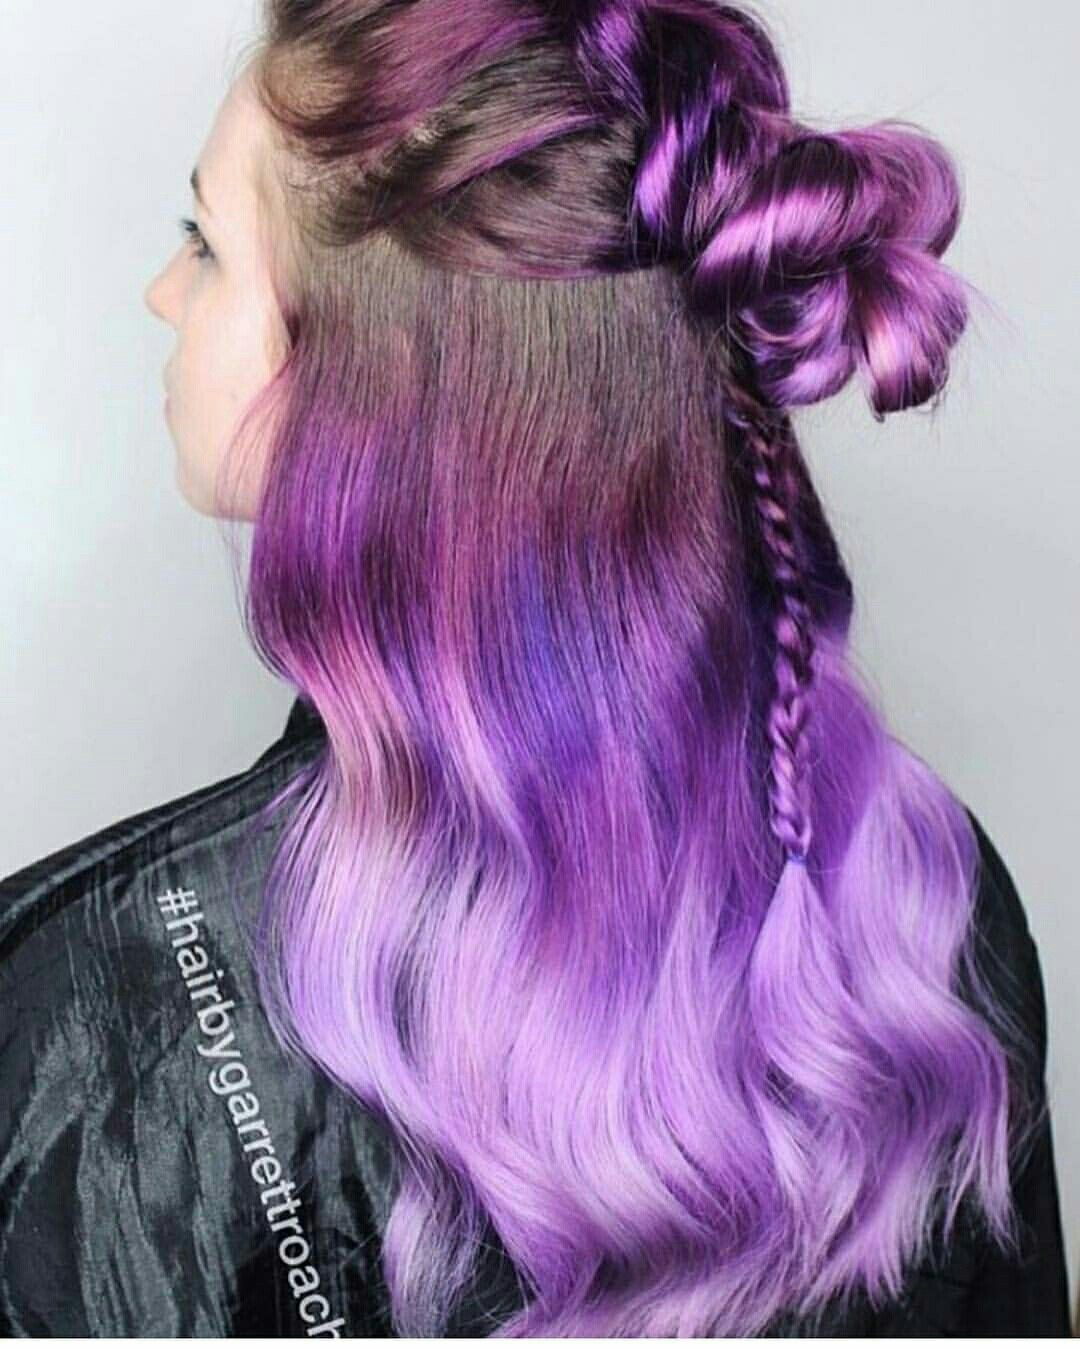 Dyed Hairstyles Classy Pinnonie Chang On Dyed Hair  Pinterest  Dye Hair